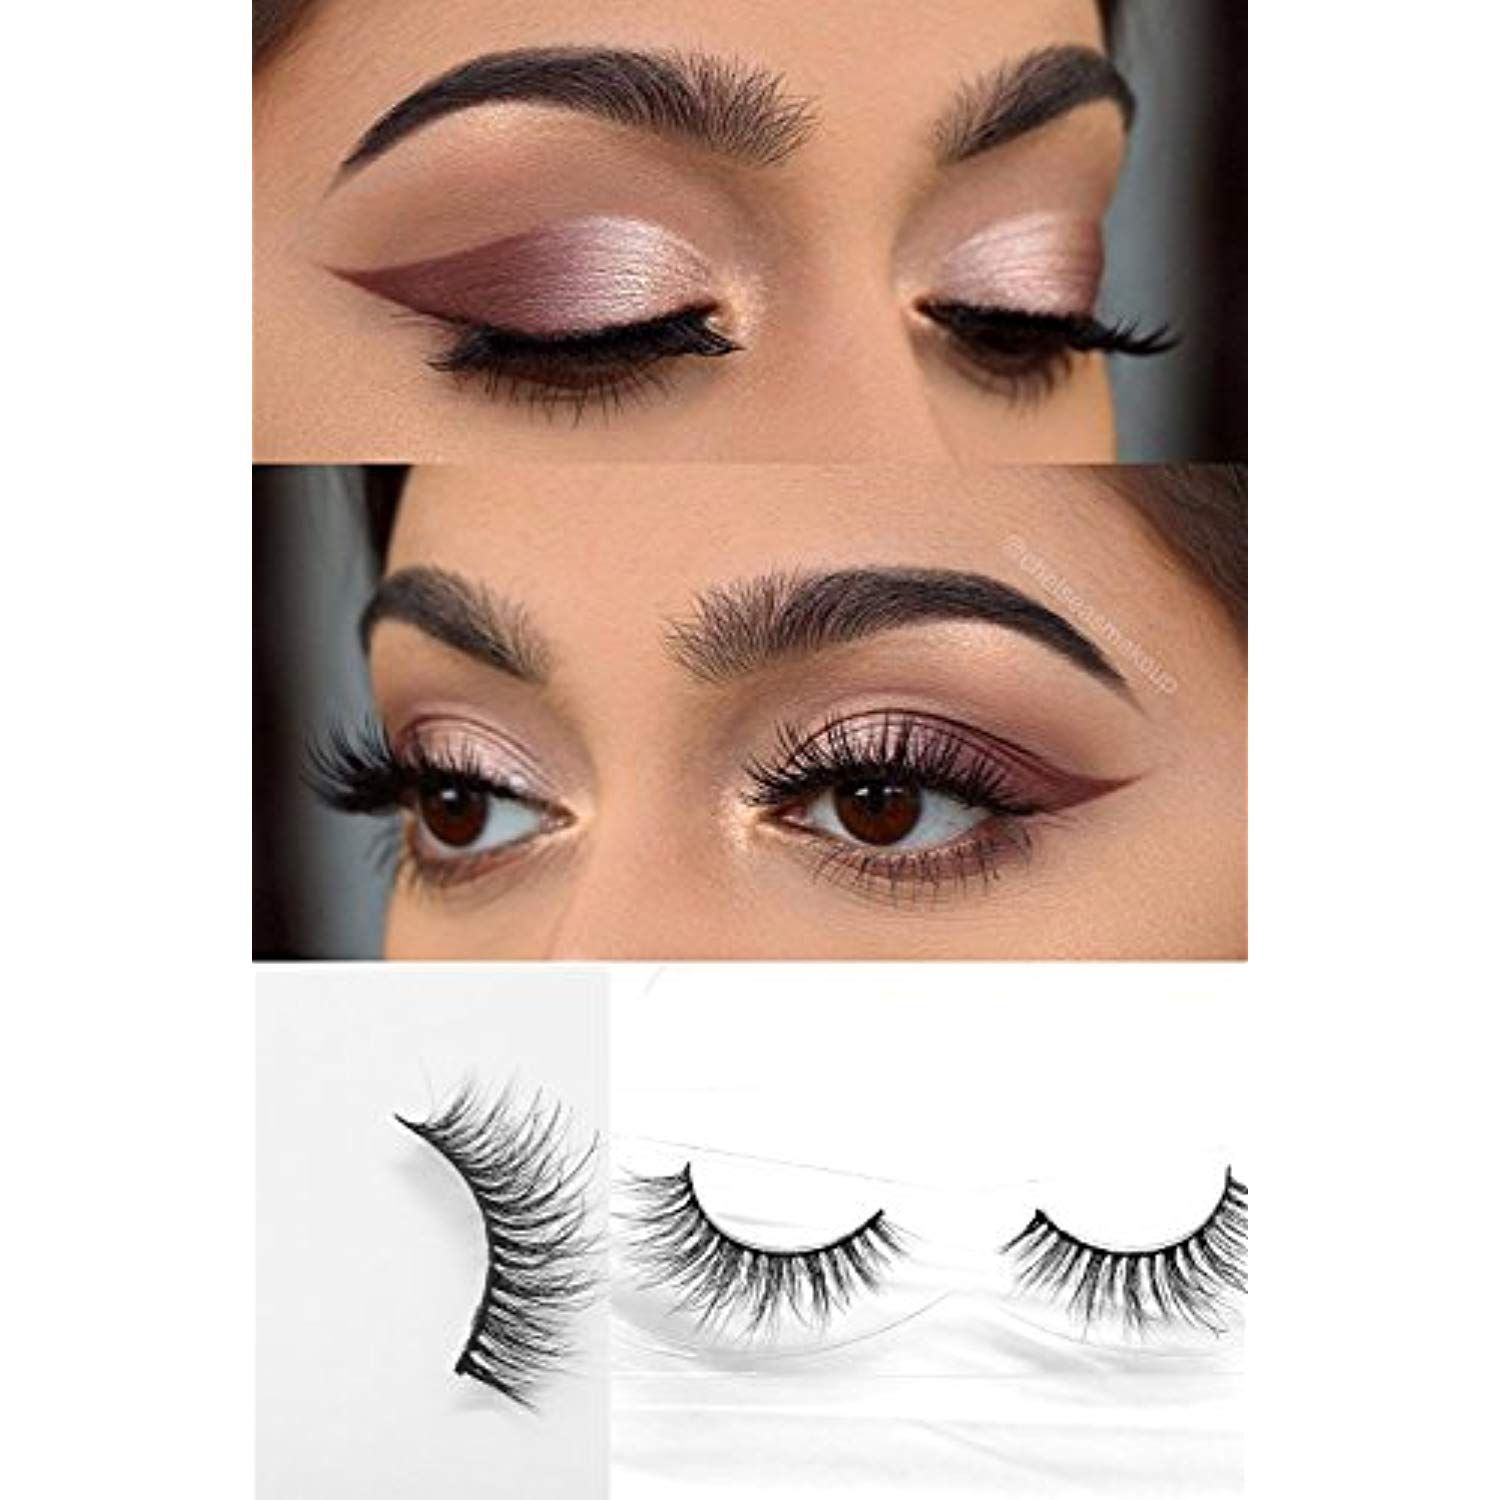 Can You Get Eyelash Extensions Wet In The Shower Googoo Mink Eyelashes Dramatic Natural 3d Mink Lashes Strips Extensions For Handmade False Eyeashes 1 Pair You Can Fi Mink Eyelashes Eyelashes Strip Lashes